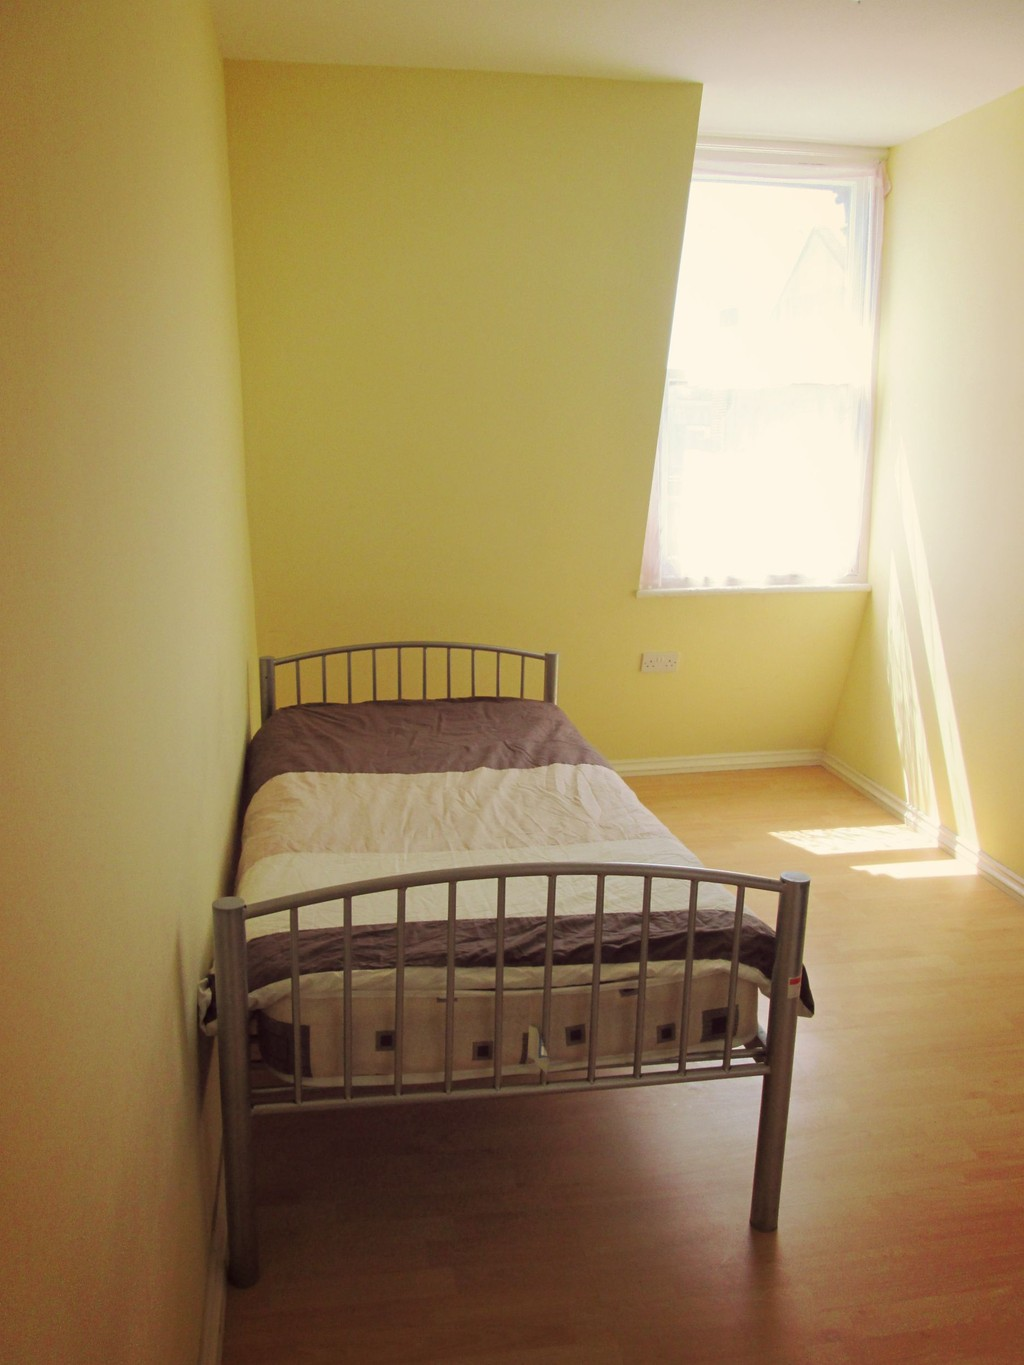 Rooms For Rent London No Deposit